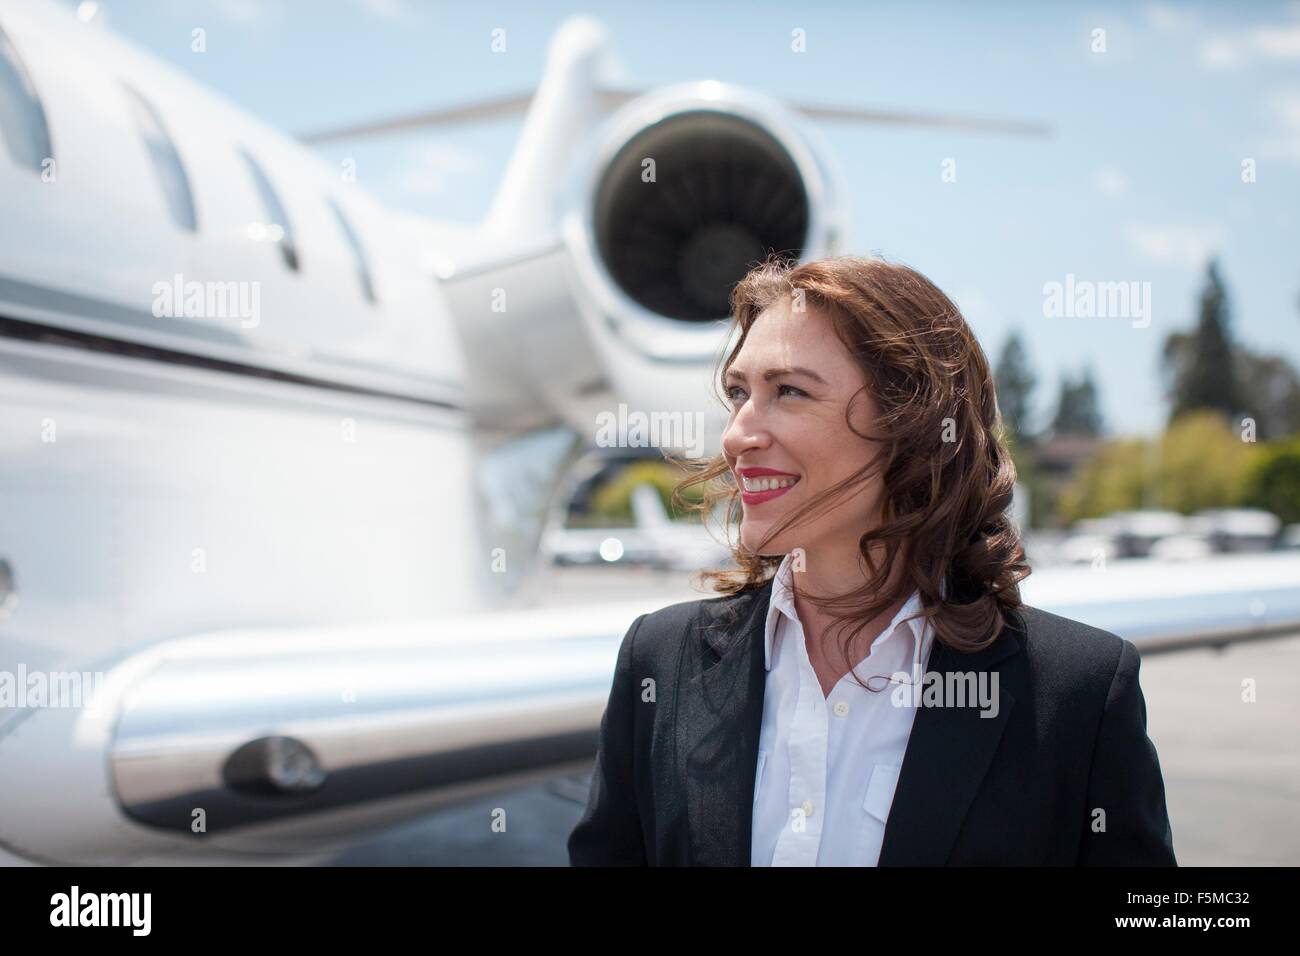 Mid adult female businesswoman and private jet at airport - Stock Image